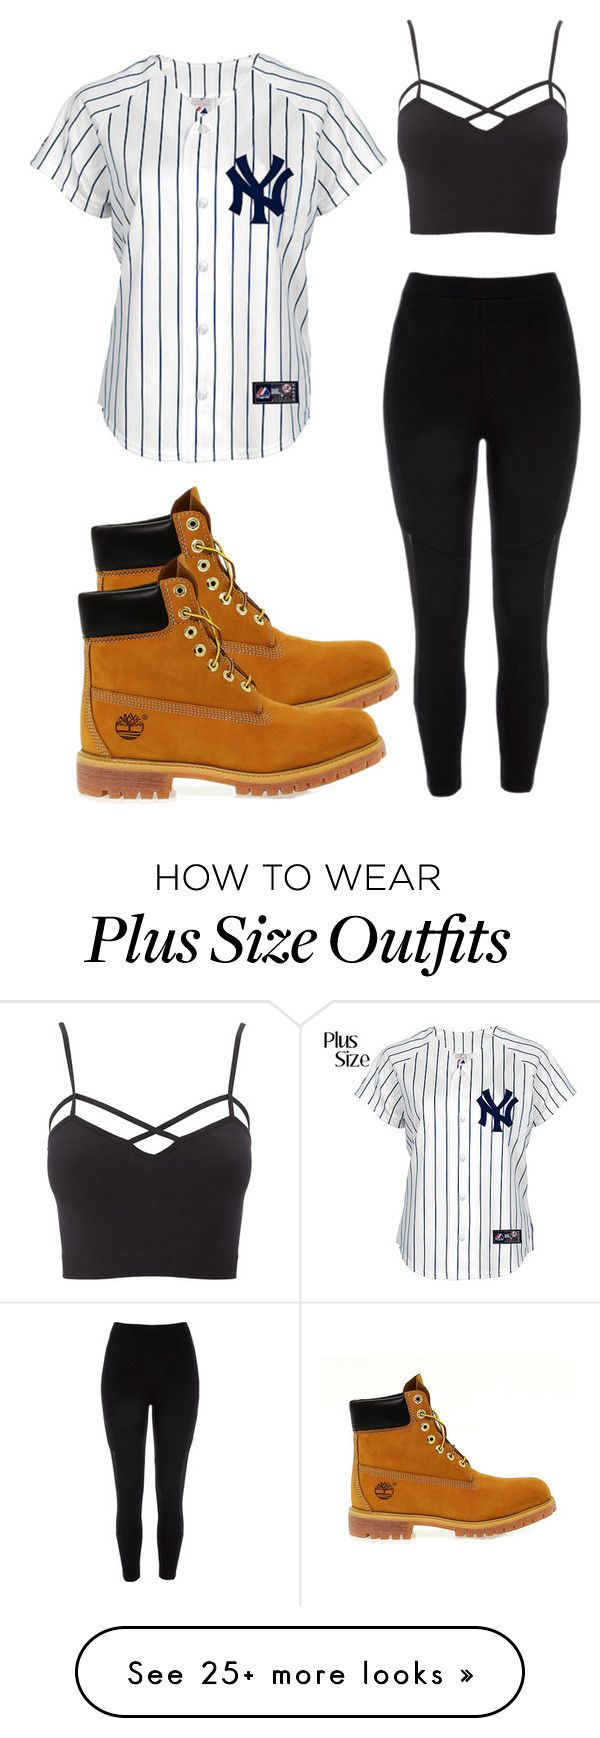 """Untitled #705"" by cali-dreams on Polyvore featuring River Island, Timberland, Charlotte Russe and plus size clothing"